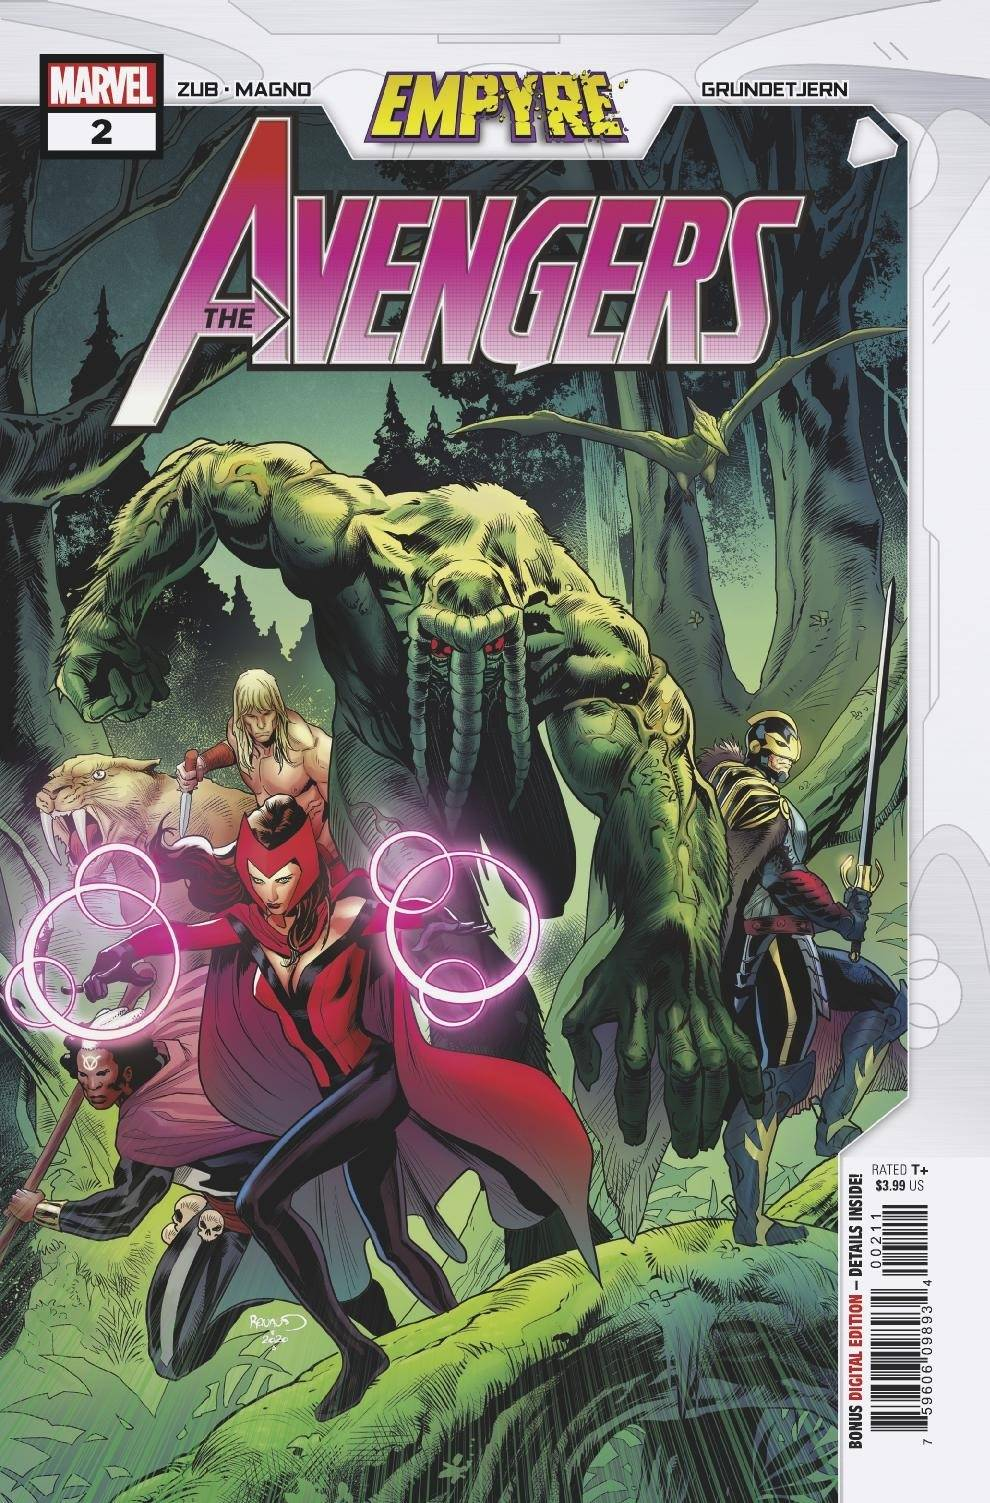 789278_empyre-avengers-2 ComicList: Marvel Comics New Releases for 08/12/2020